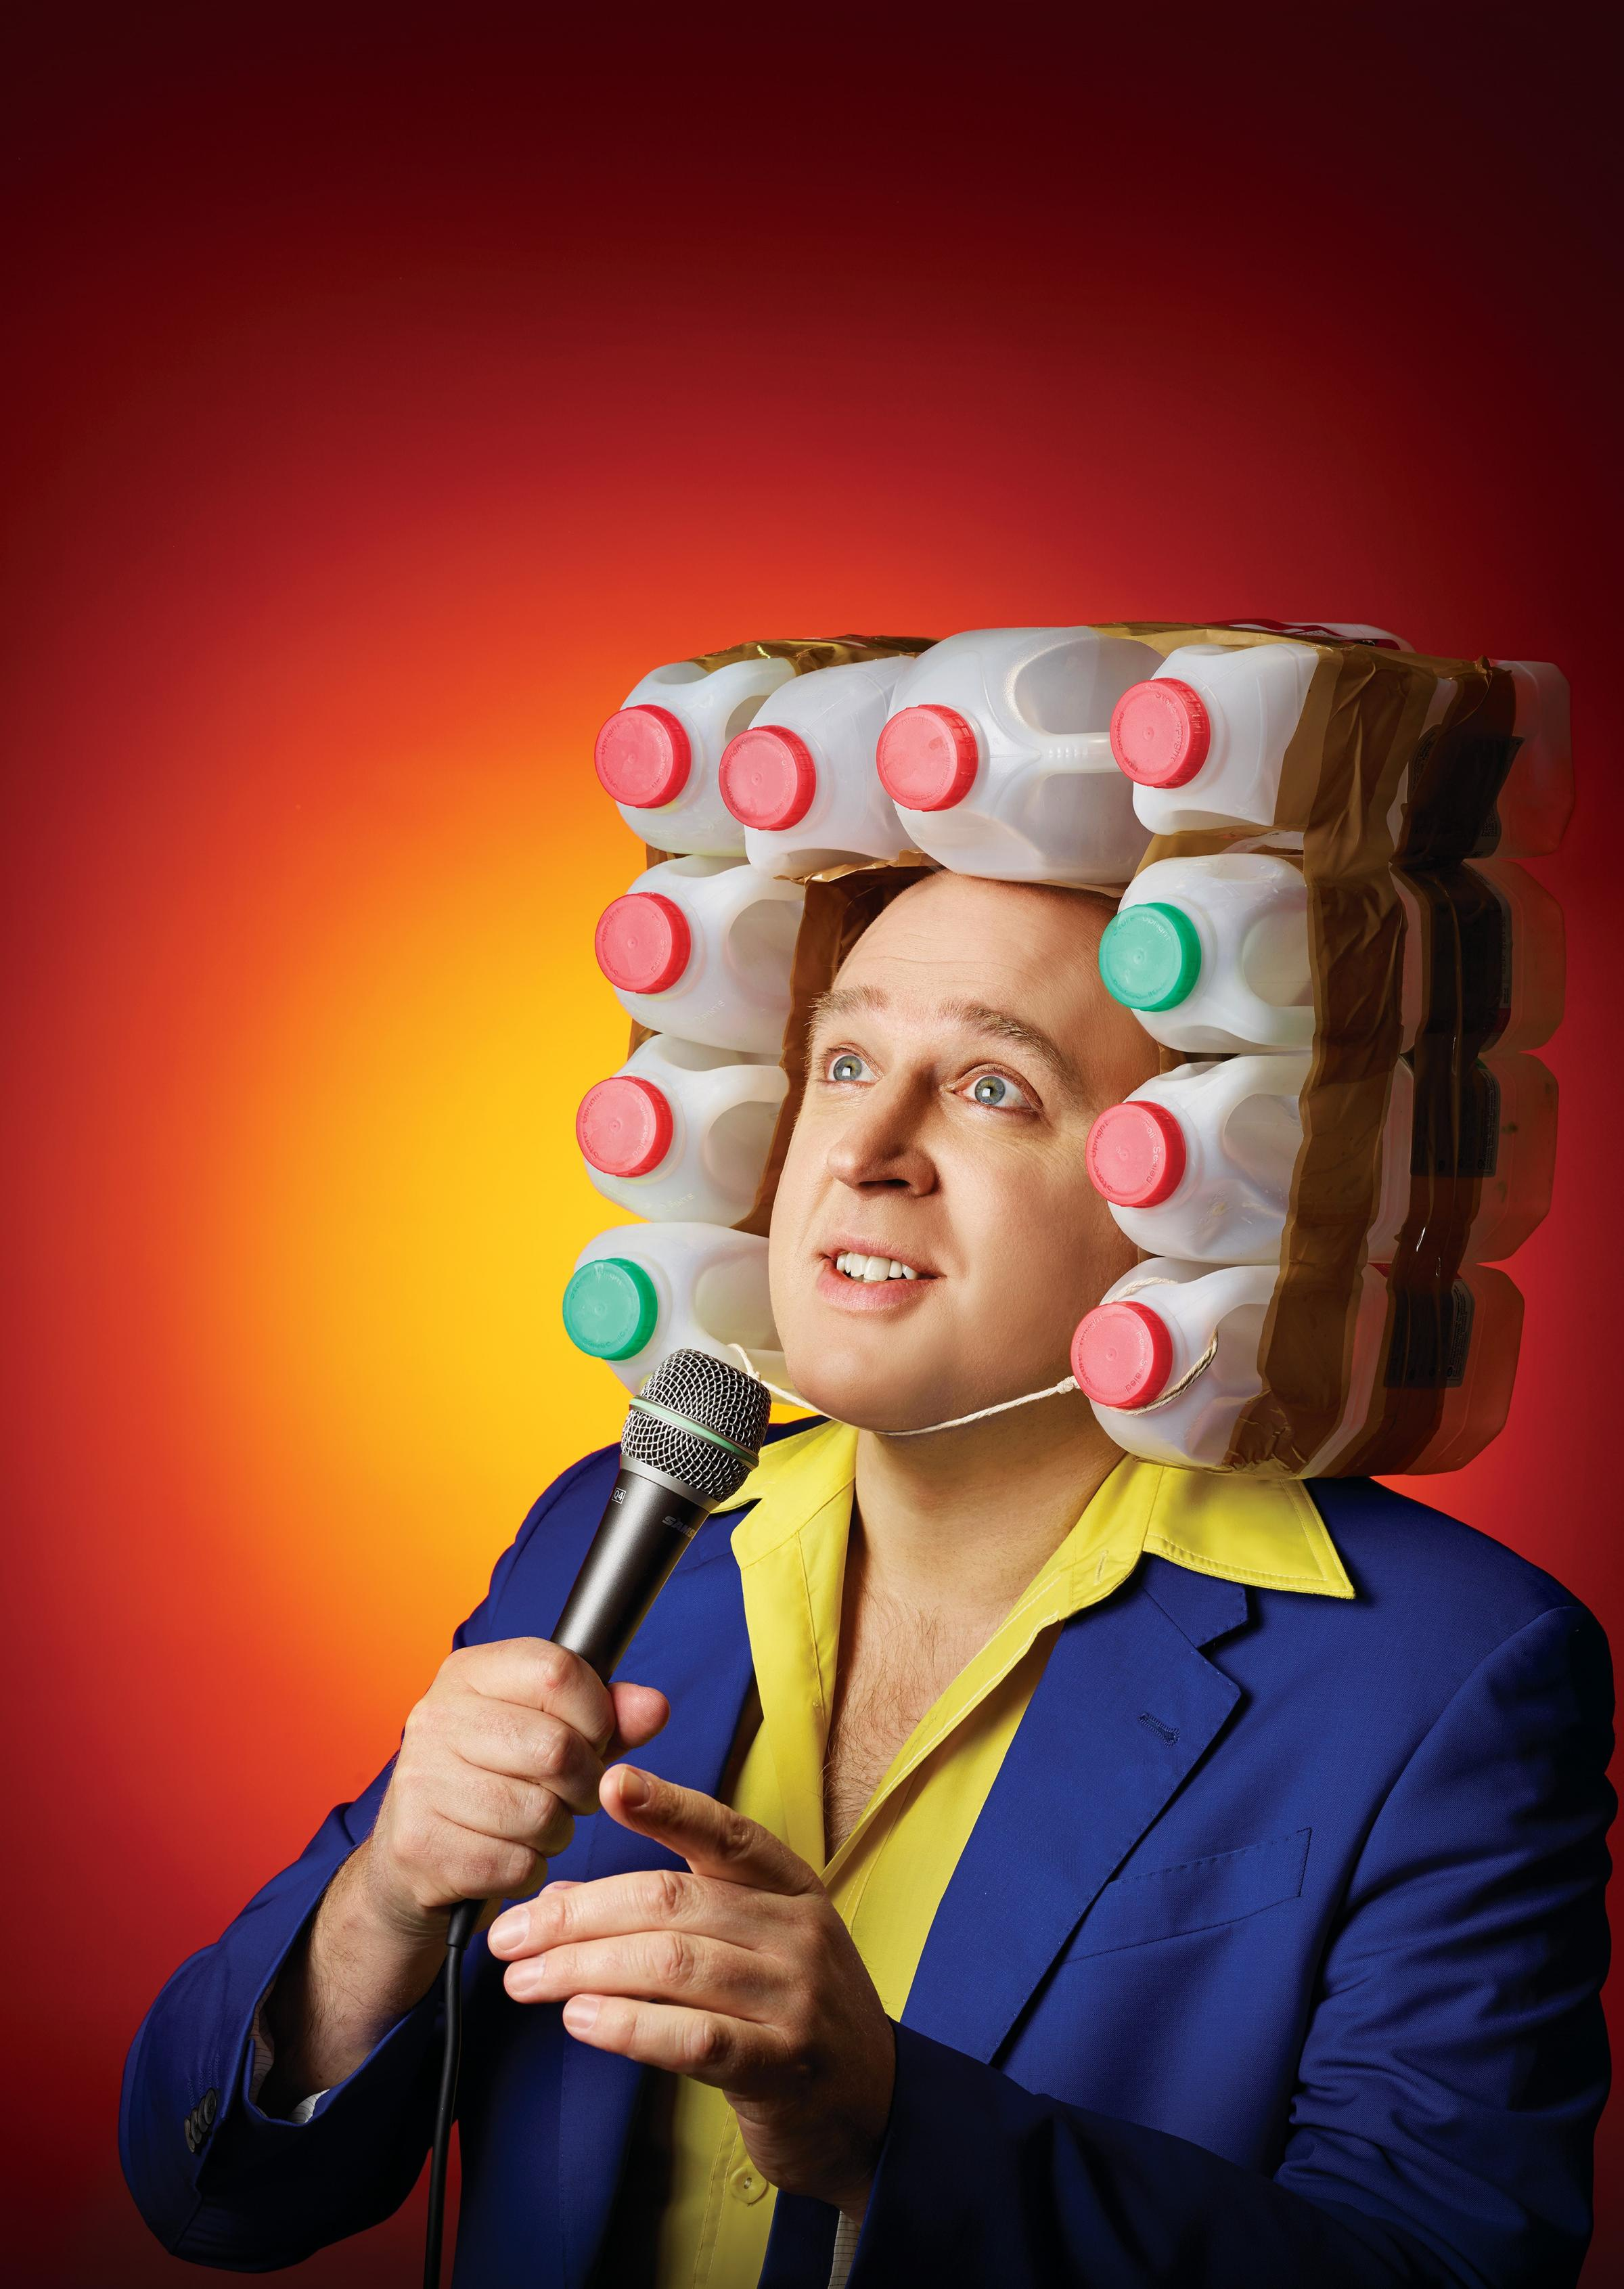 BIG INTERVIEW: Tim Vine talks to the County Gazette ahead of his show in Yeovil